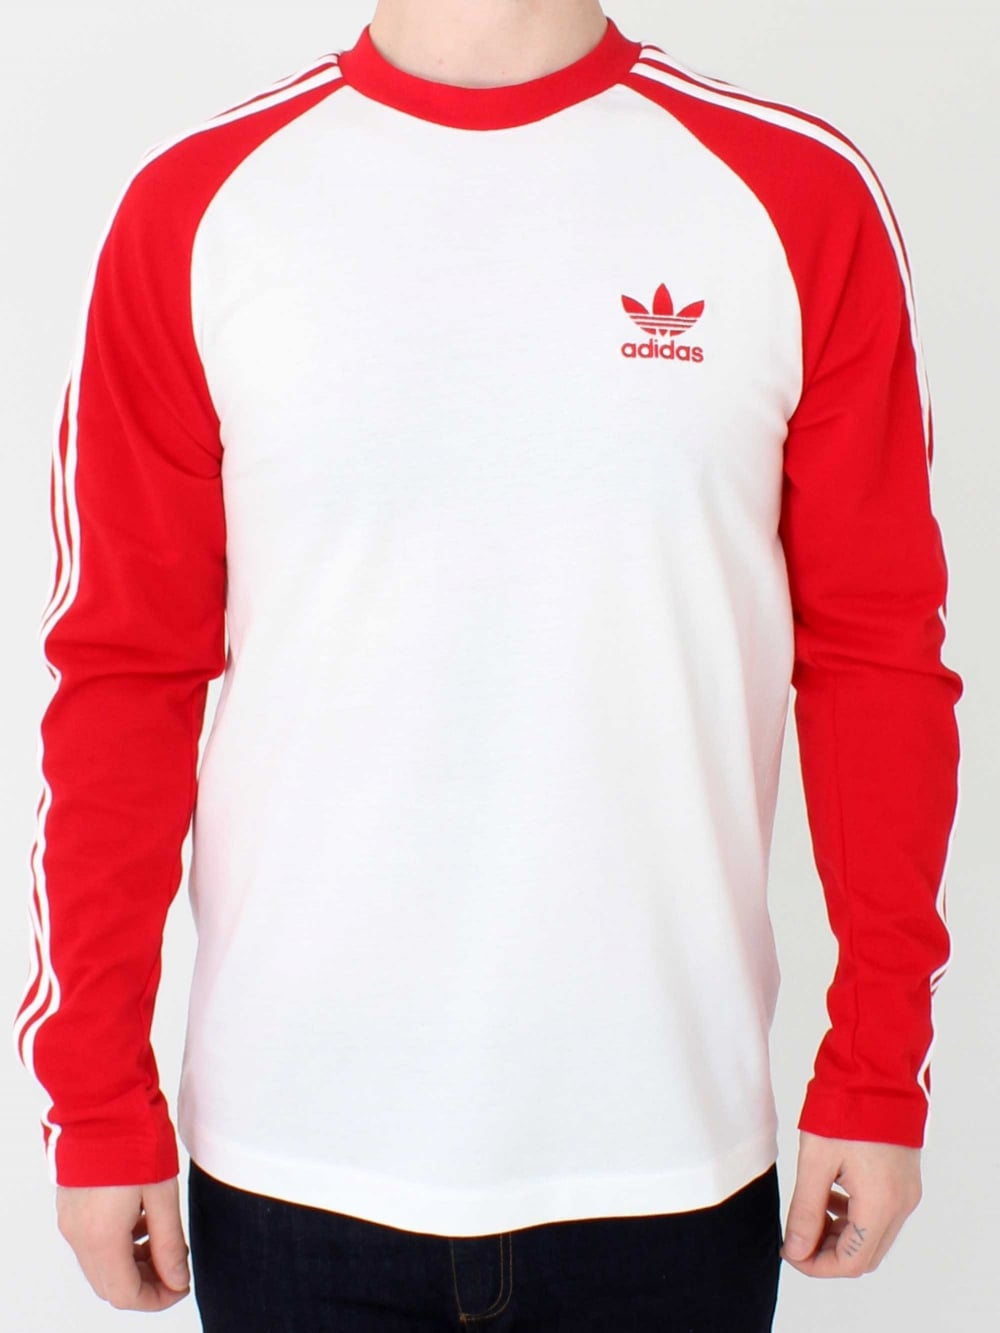 cc7932498d05a8 Adidas 3 Stripe Long Sleeve T.Shirt in Scarlet